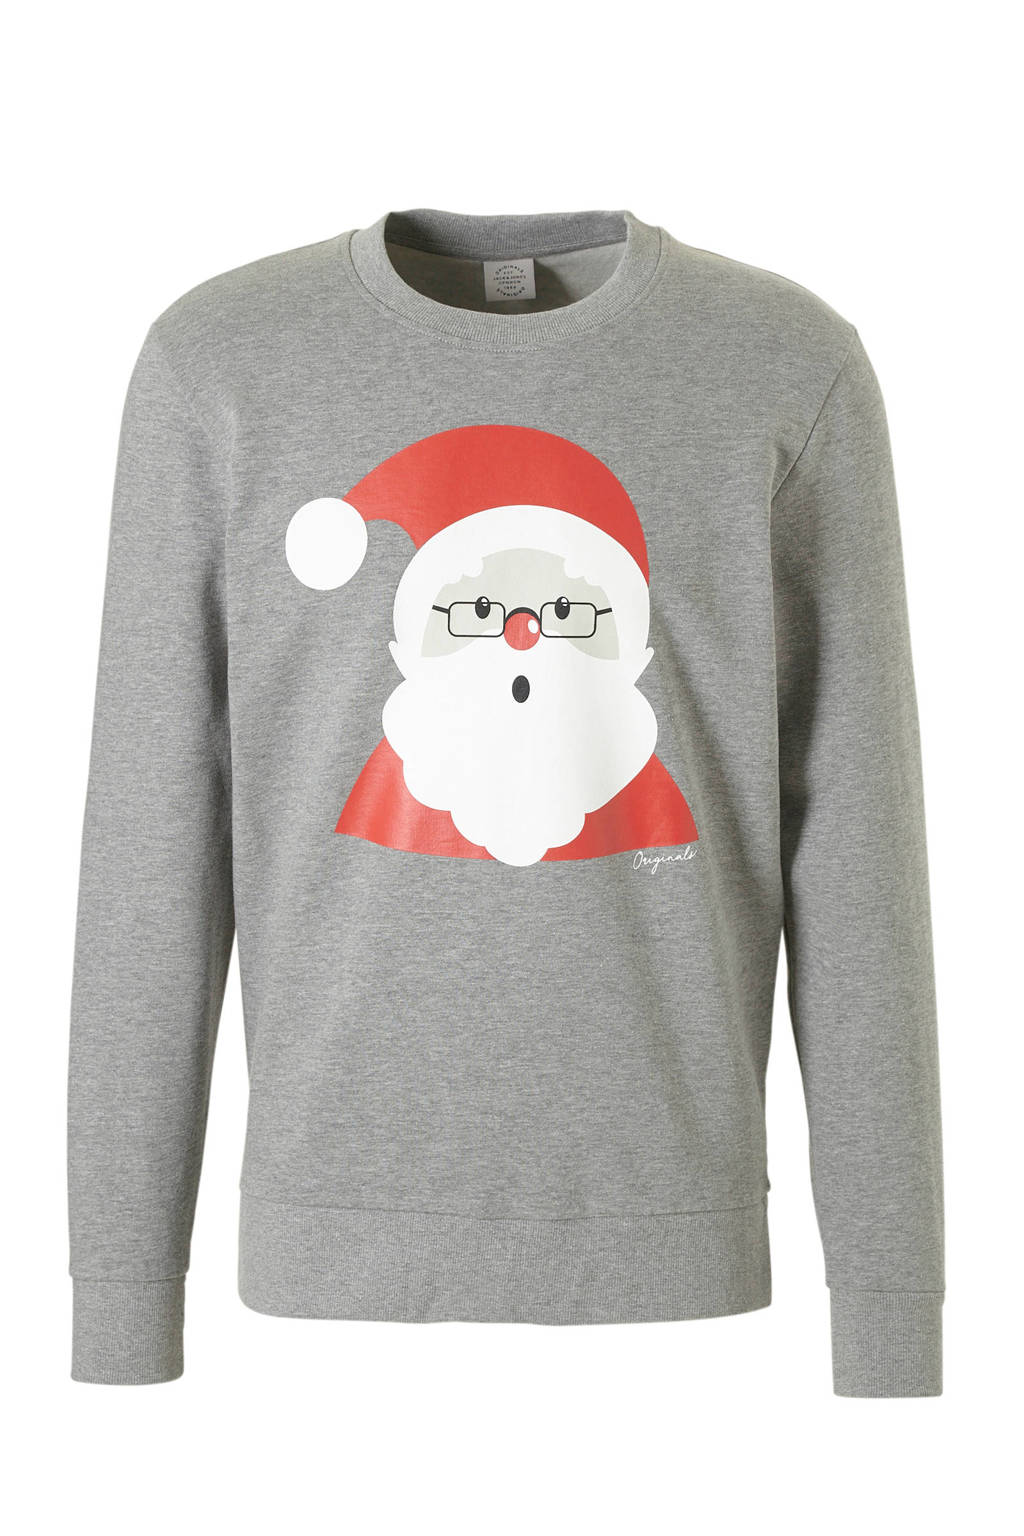 Jack & Jones Originals kersttrui grijs, Grijs